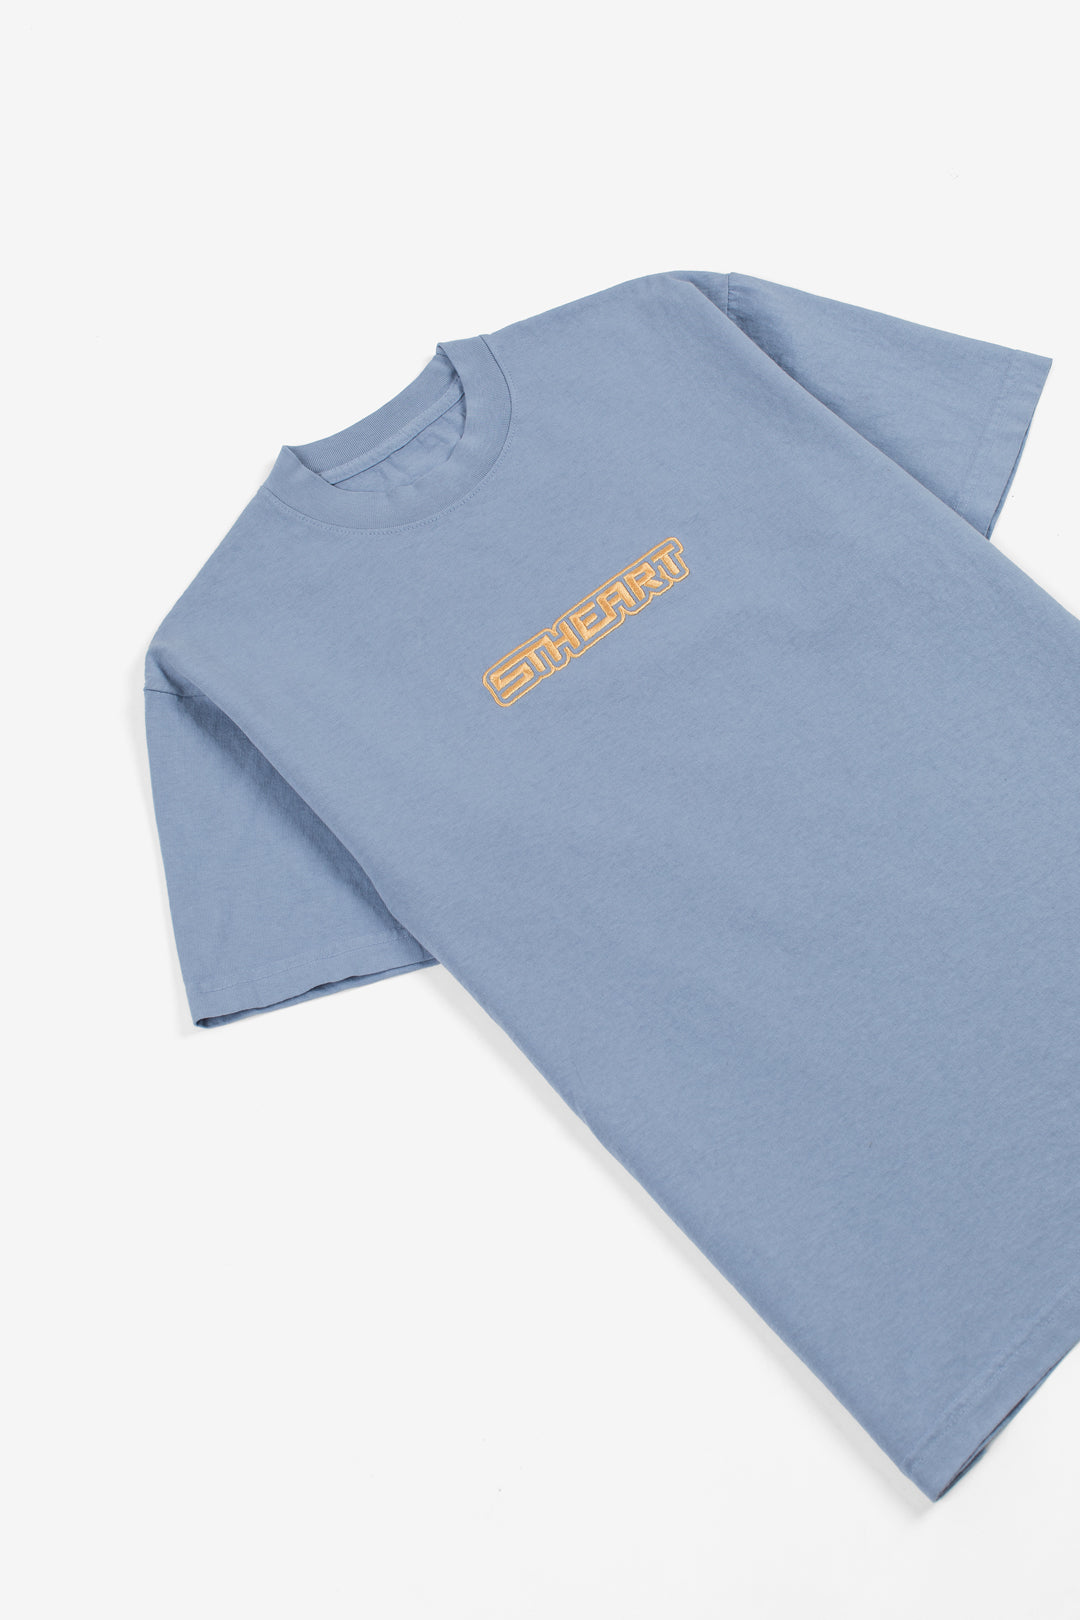 Futuretype Embroidered Heavy Tee | Blue